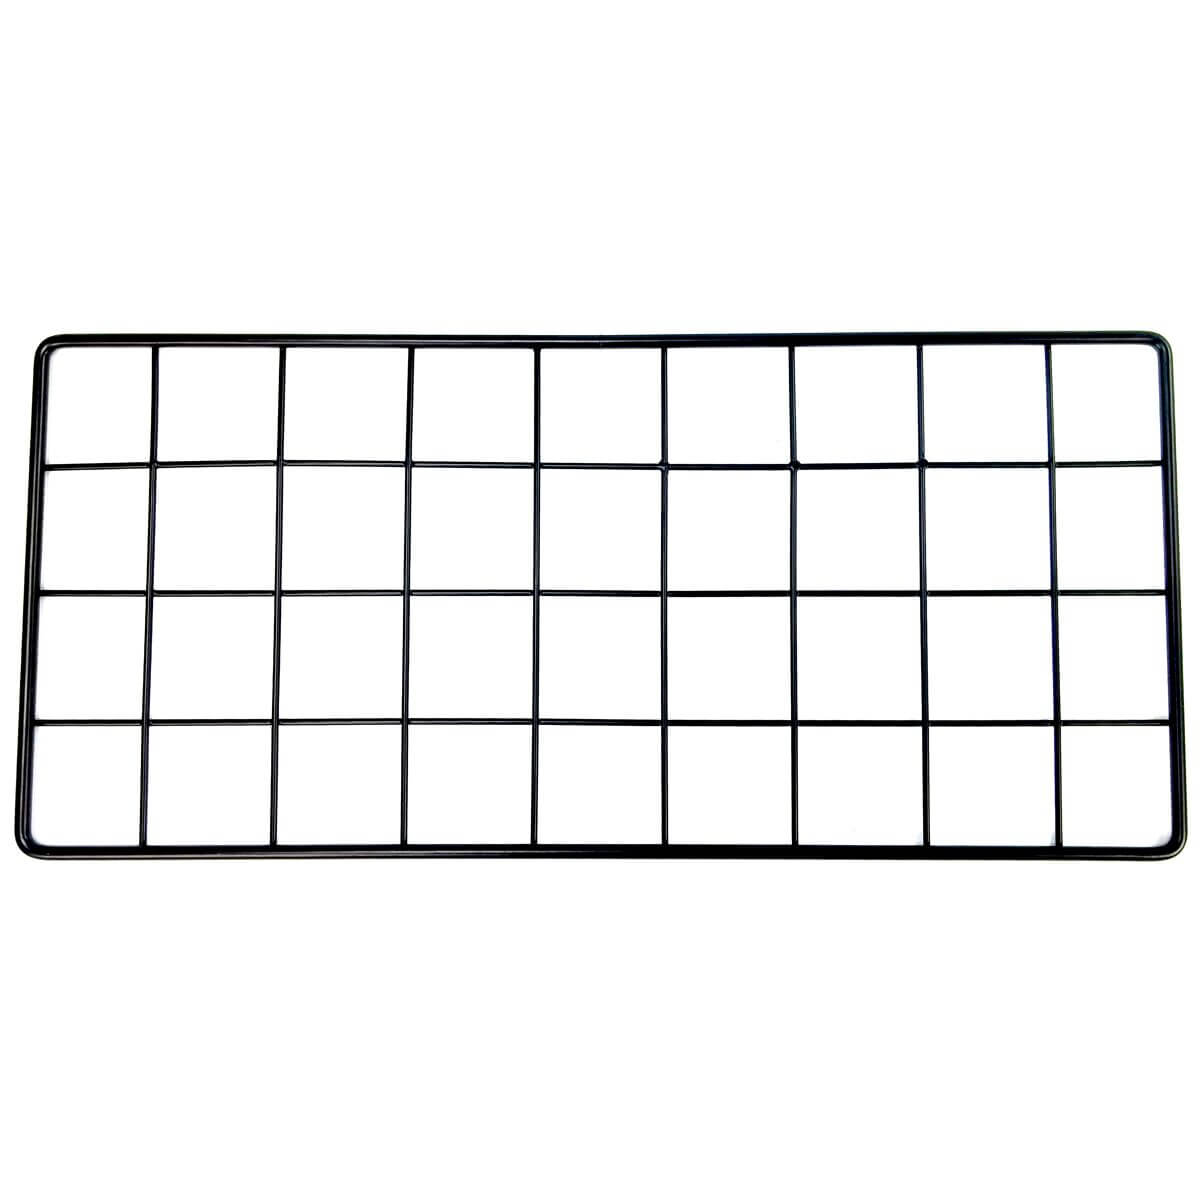 Half grid, narrow - 4 inner grid holes wide, regular size long